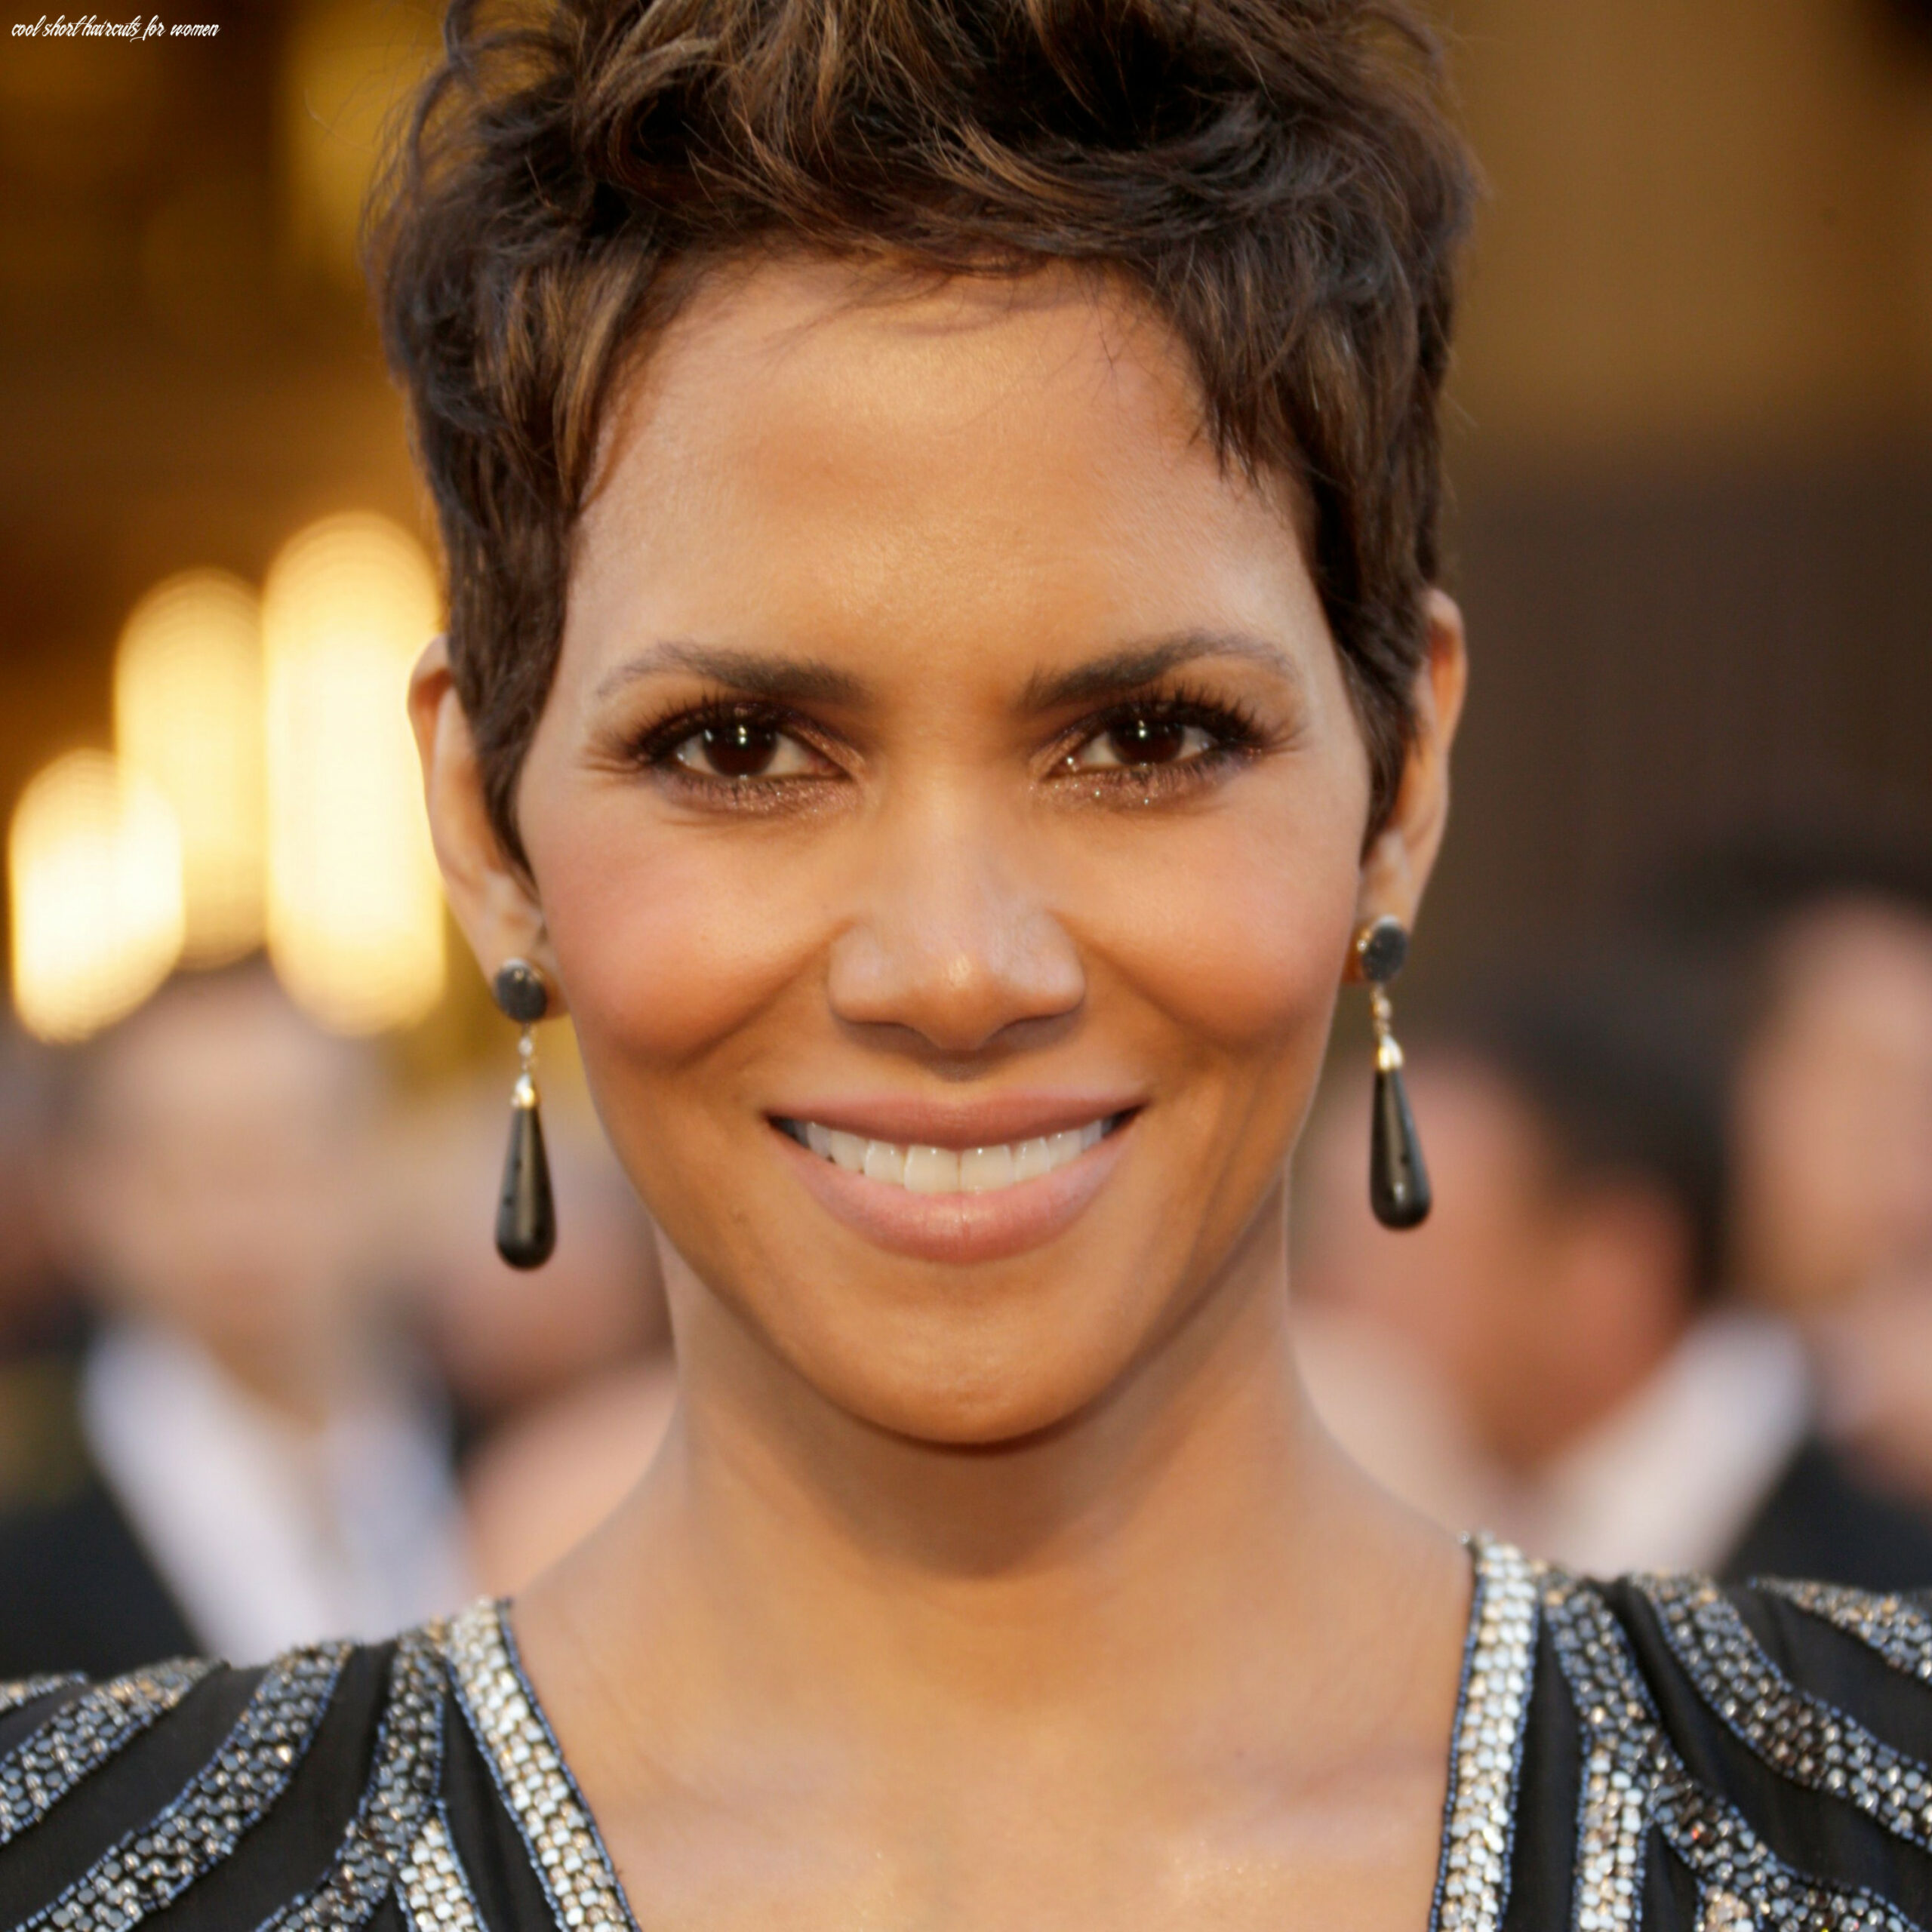 11 classic and cool short hairstyles for older women cool short haircuts for women